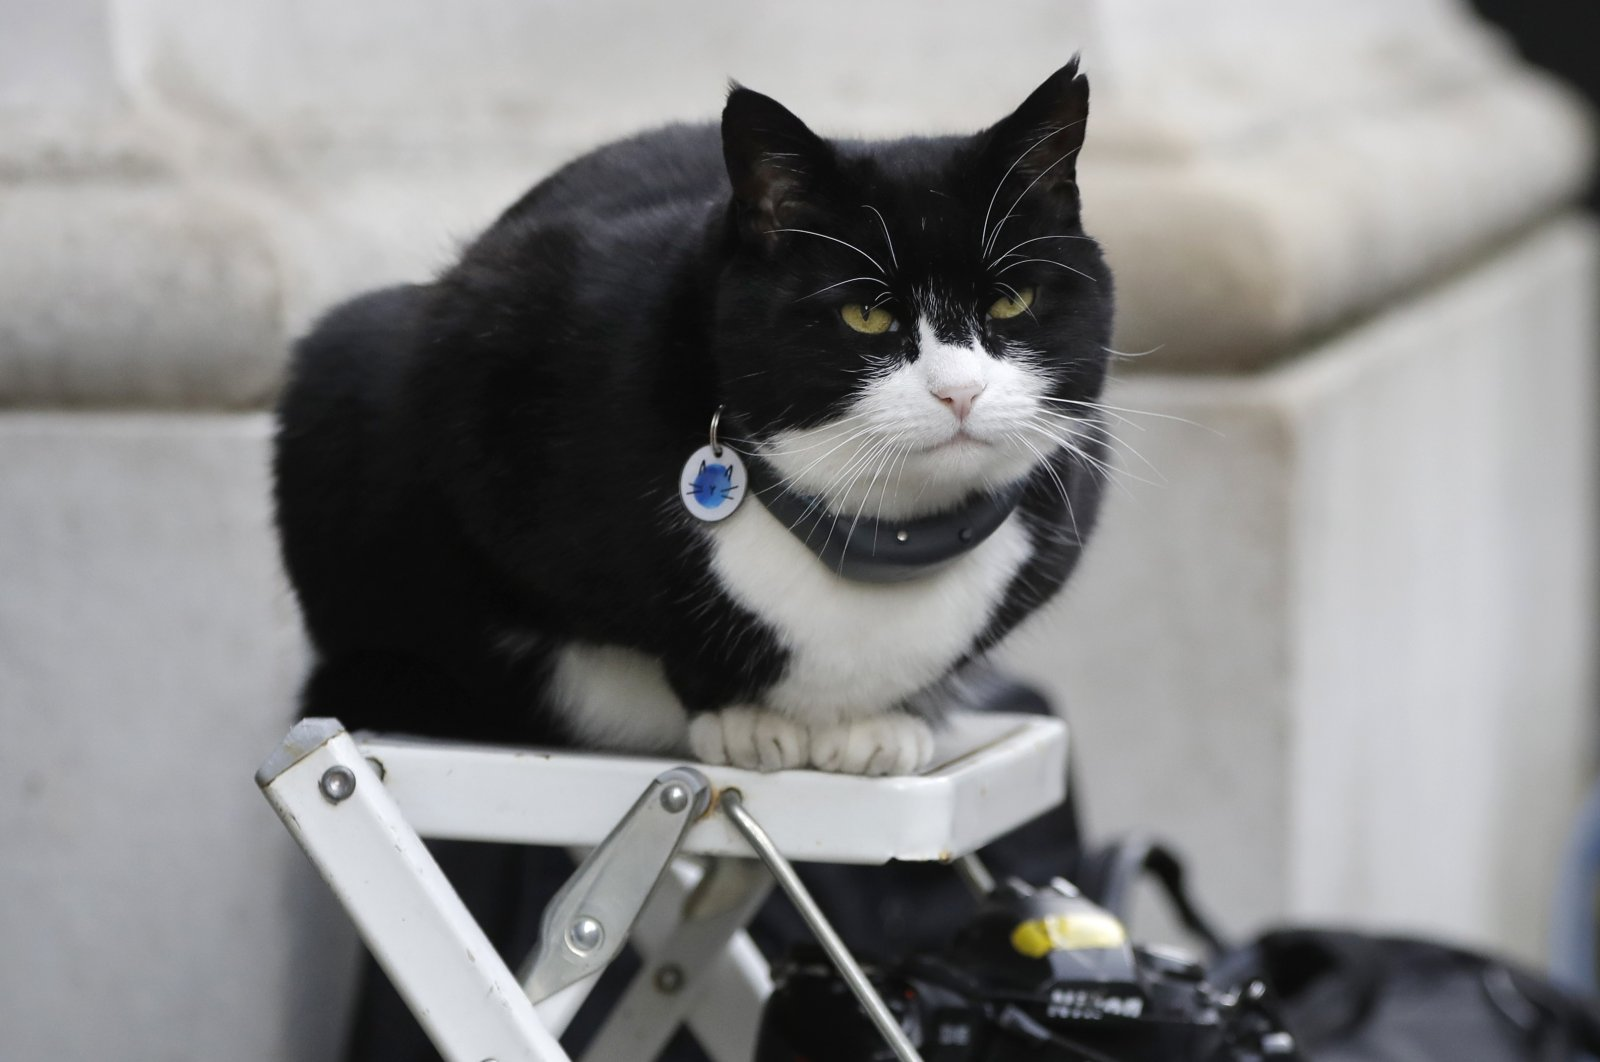 Palmerston, the Foreign Office cat sits on a photographer's ladder as media await the departure of Britain's Prime Minister Theresa May from 10 Downing Street in London, Feb. 12, 2019. (AP Photo)